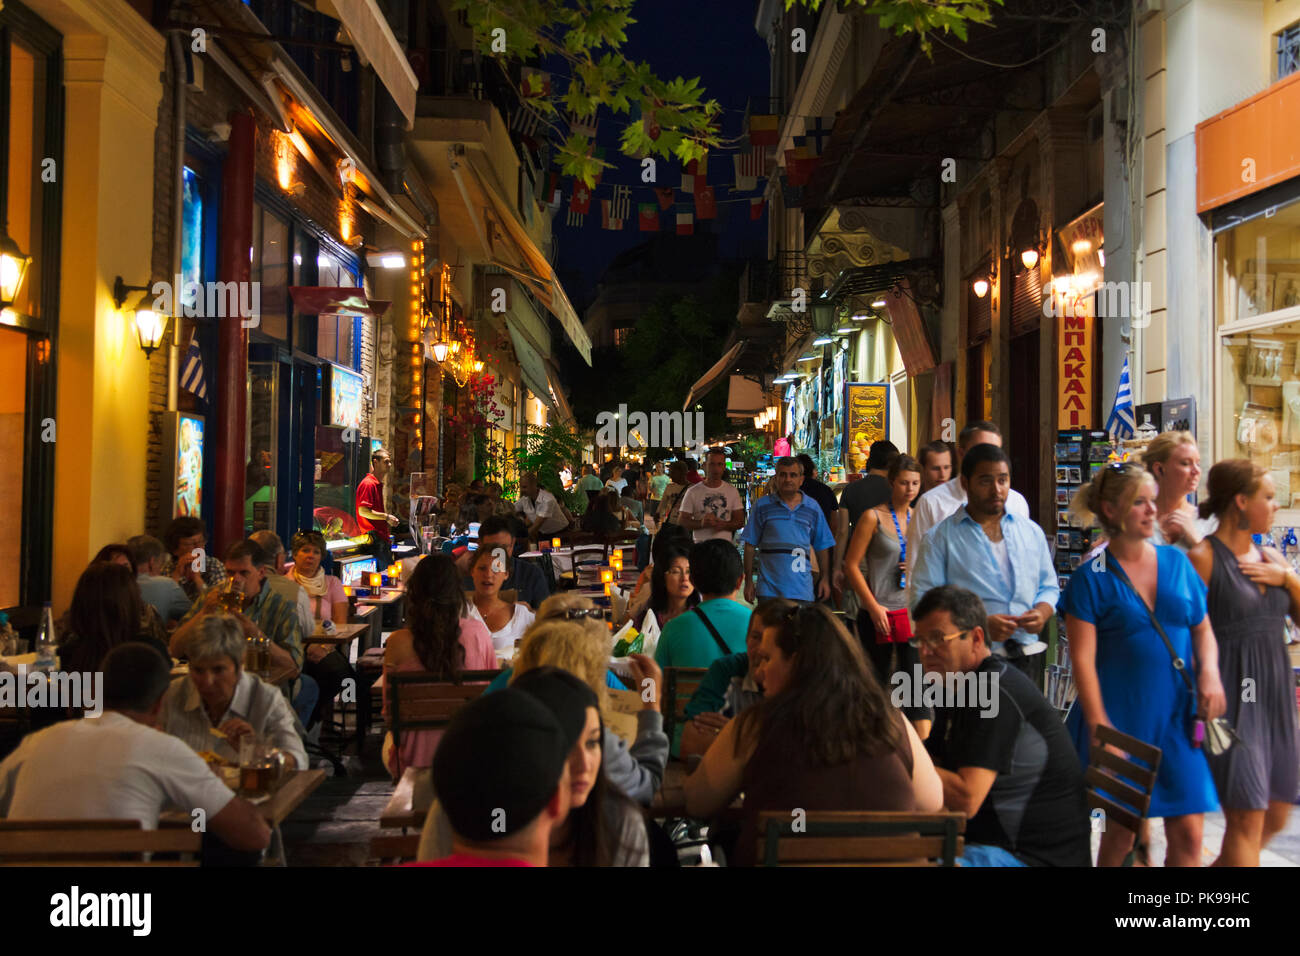 Night view of Plaka district, Athens, Greece - Stock Image